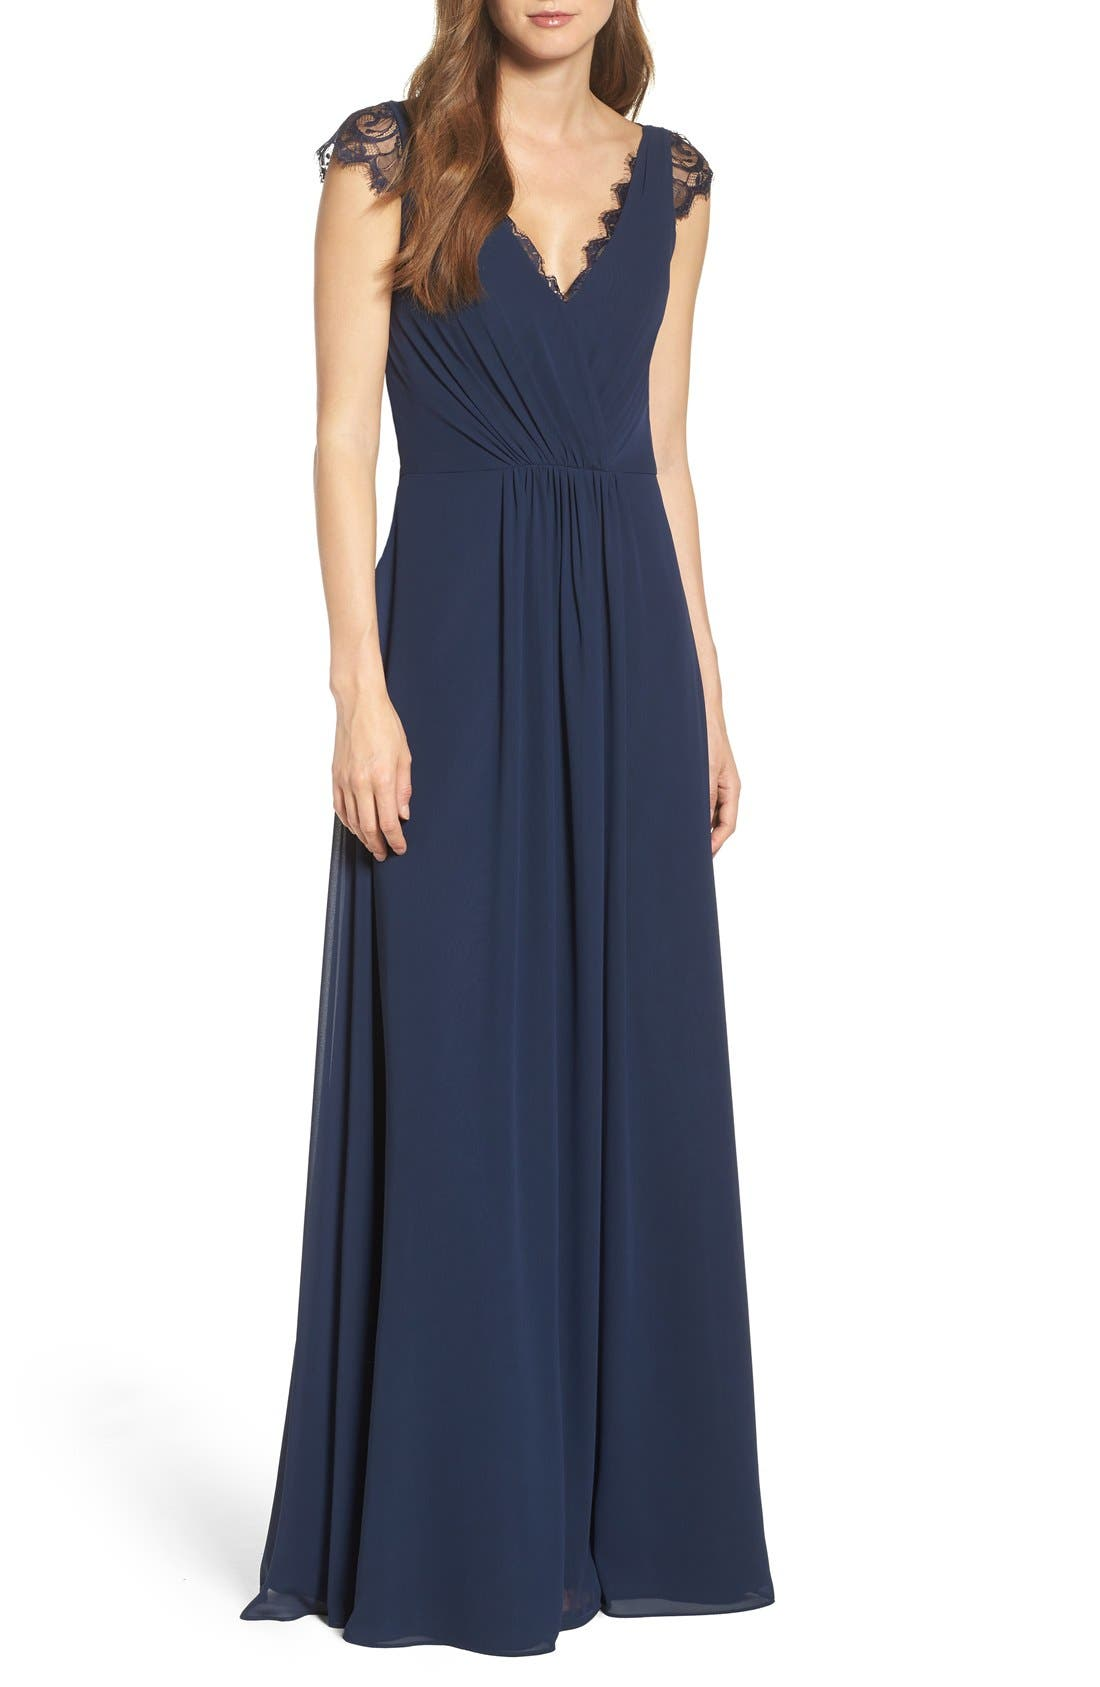 Lace & Chiffon Cap Sleeve Gown,                             Main thumbnail 1, color,                             Navy